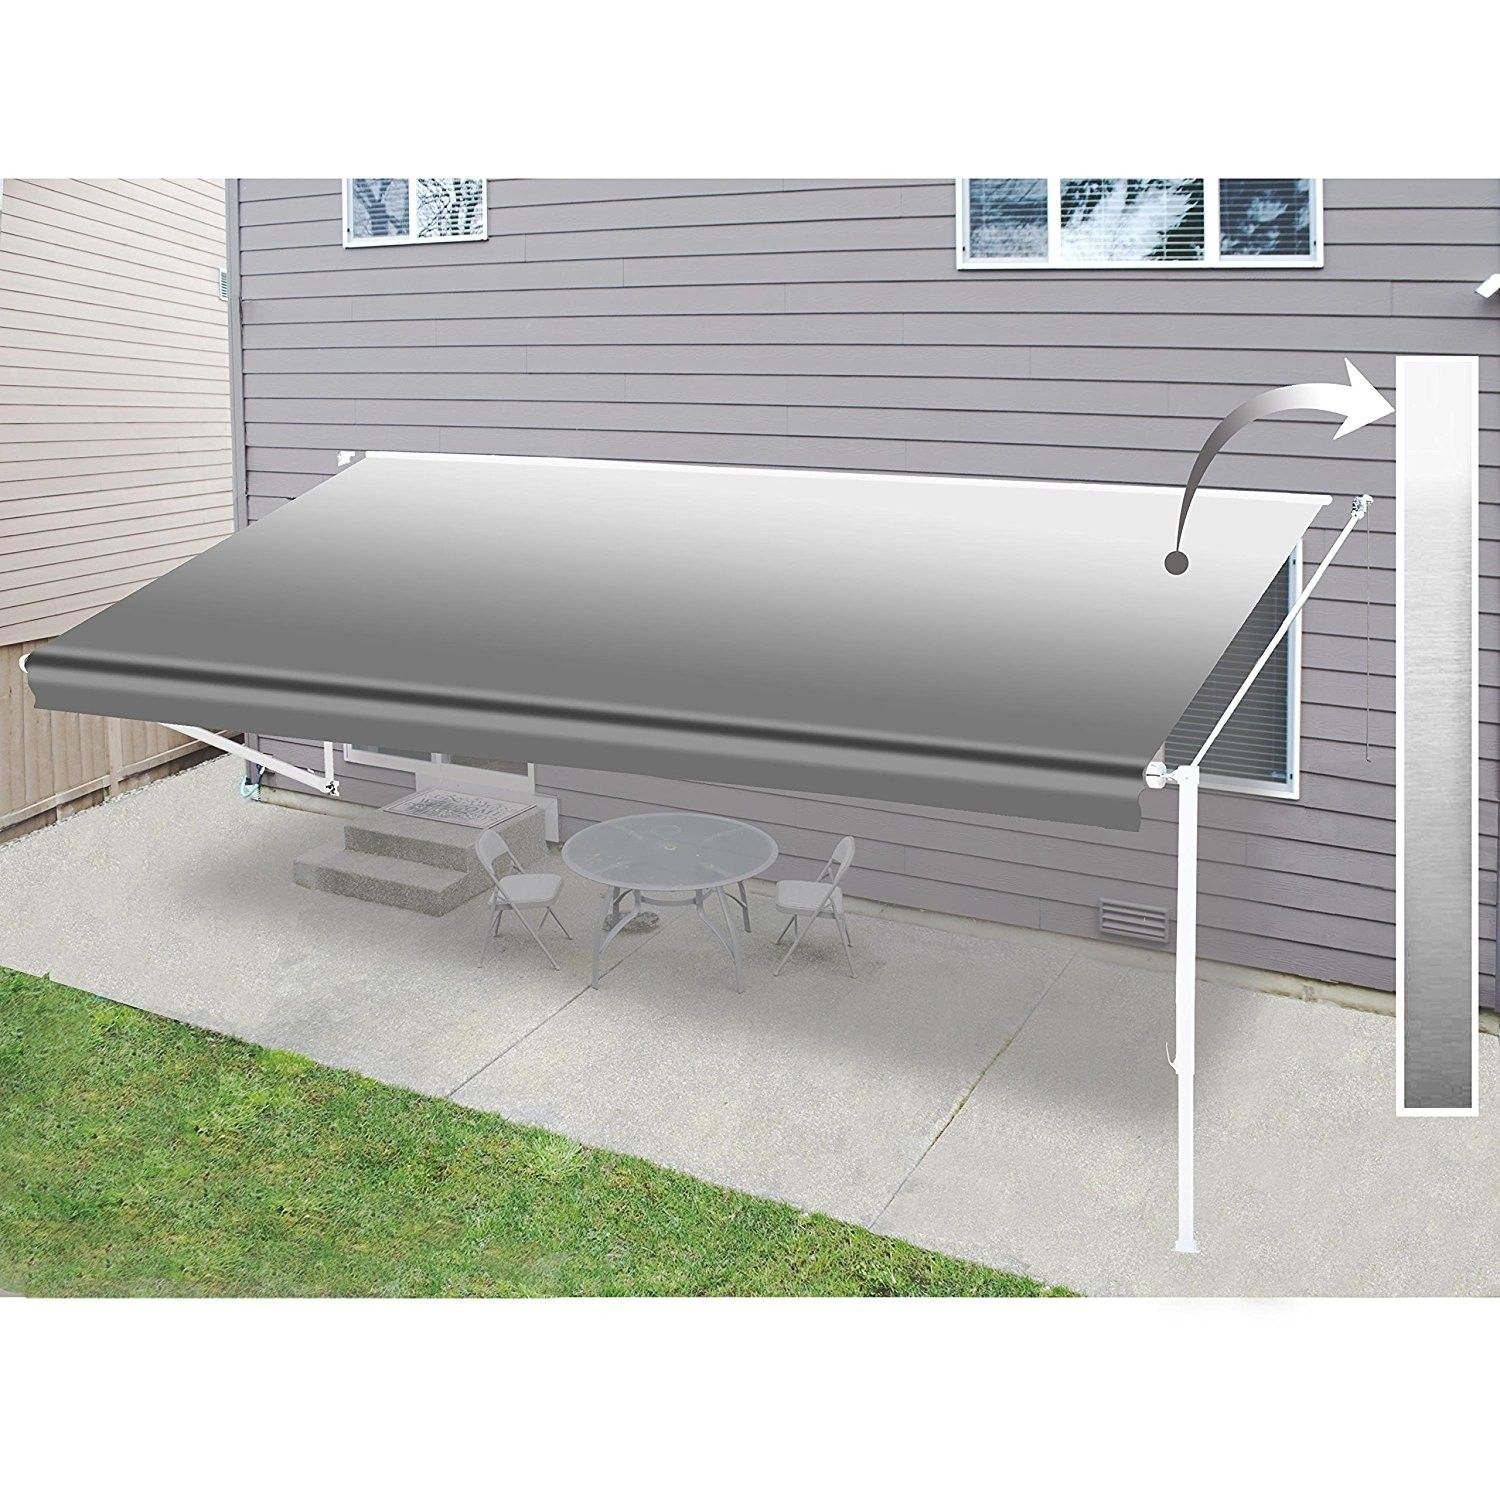 Retractable Rv Home Patio 12ft W X 8ft D Awning Patio Awning Aleko Patio Swing Canopy